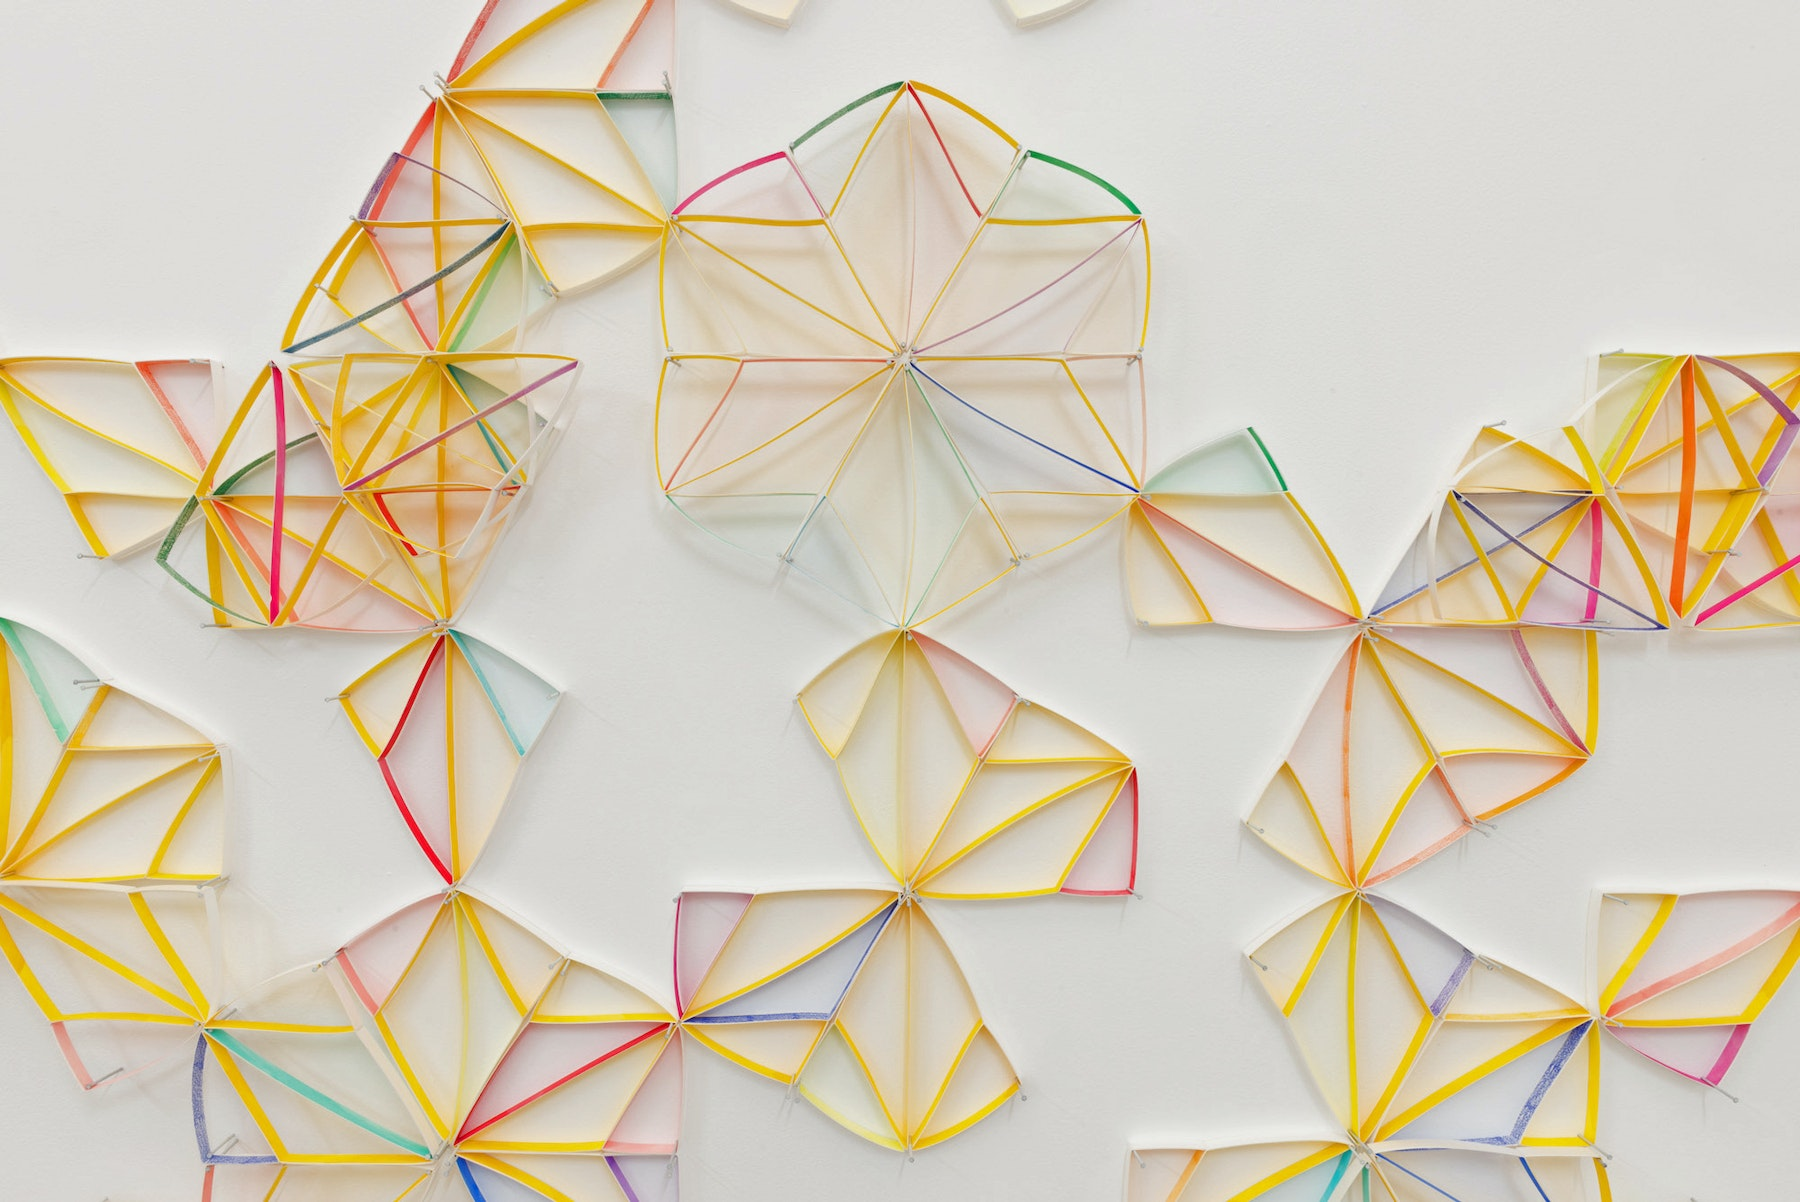 Partial Equilateral Triangle (Diamond) by Alex Paik